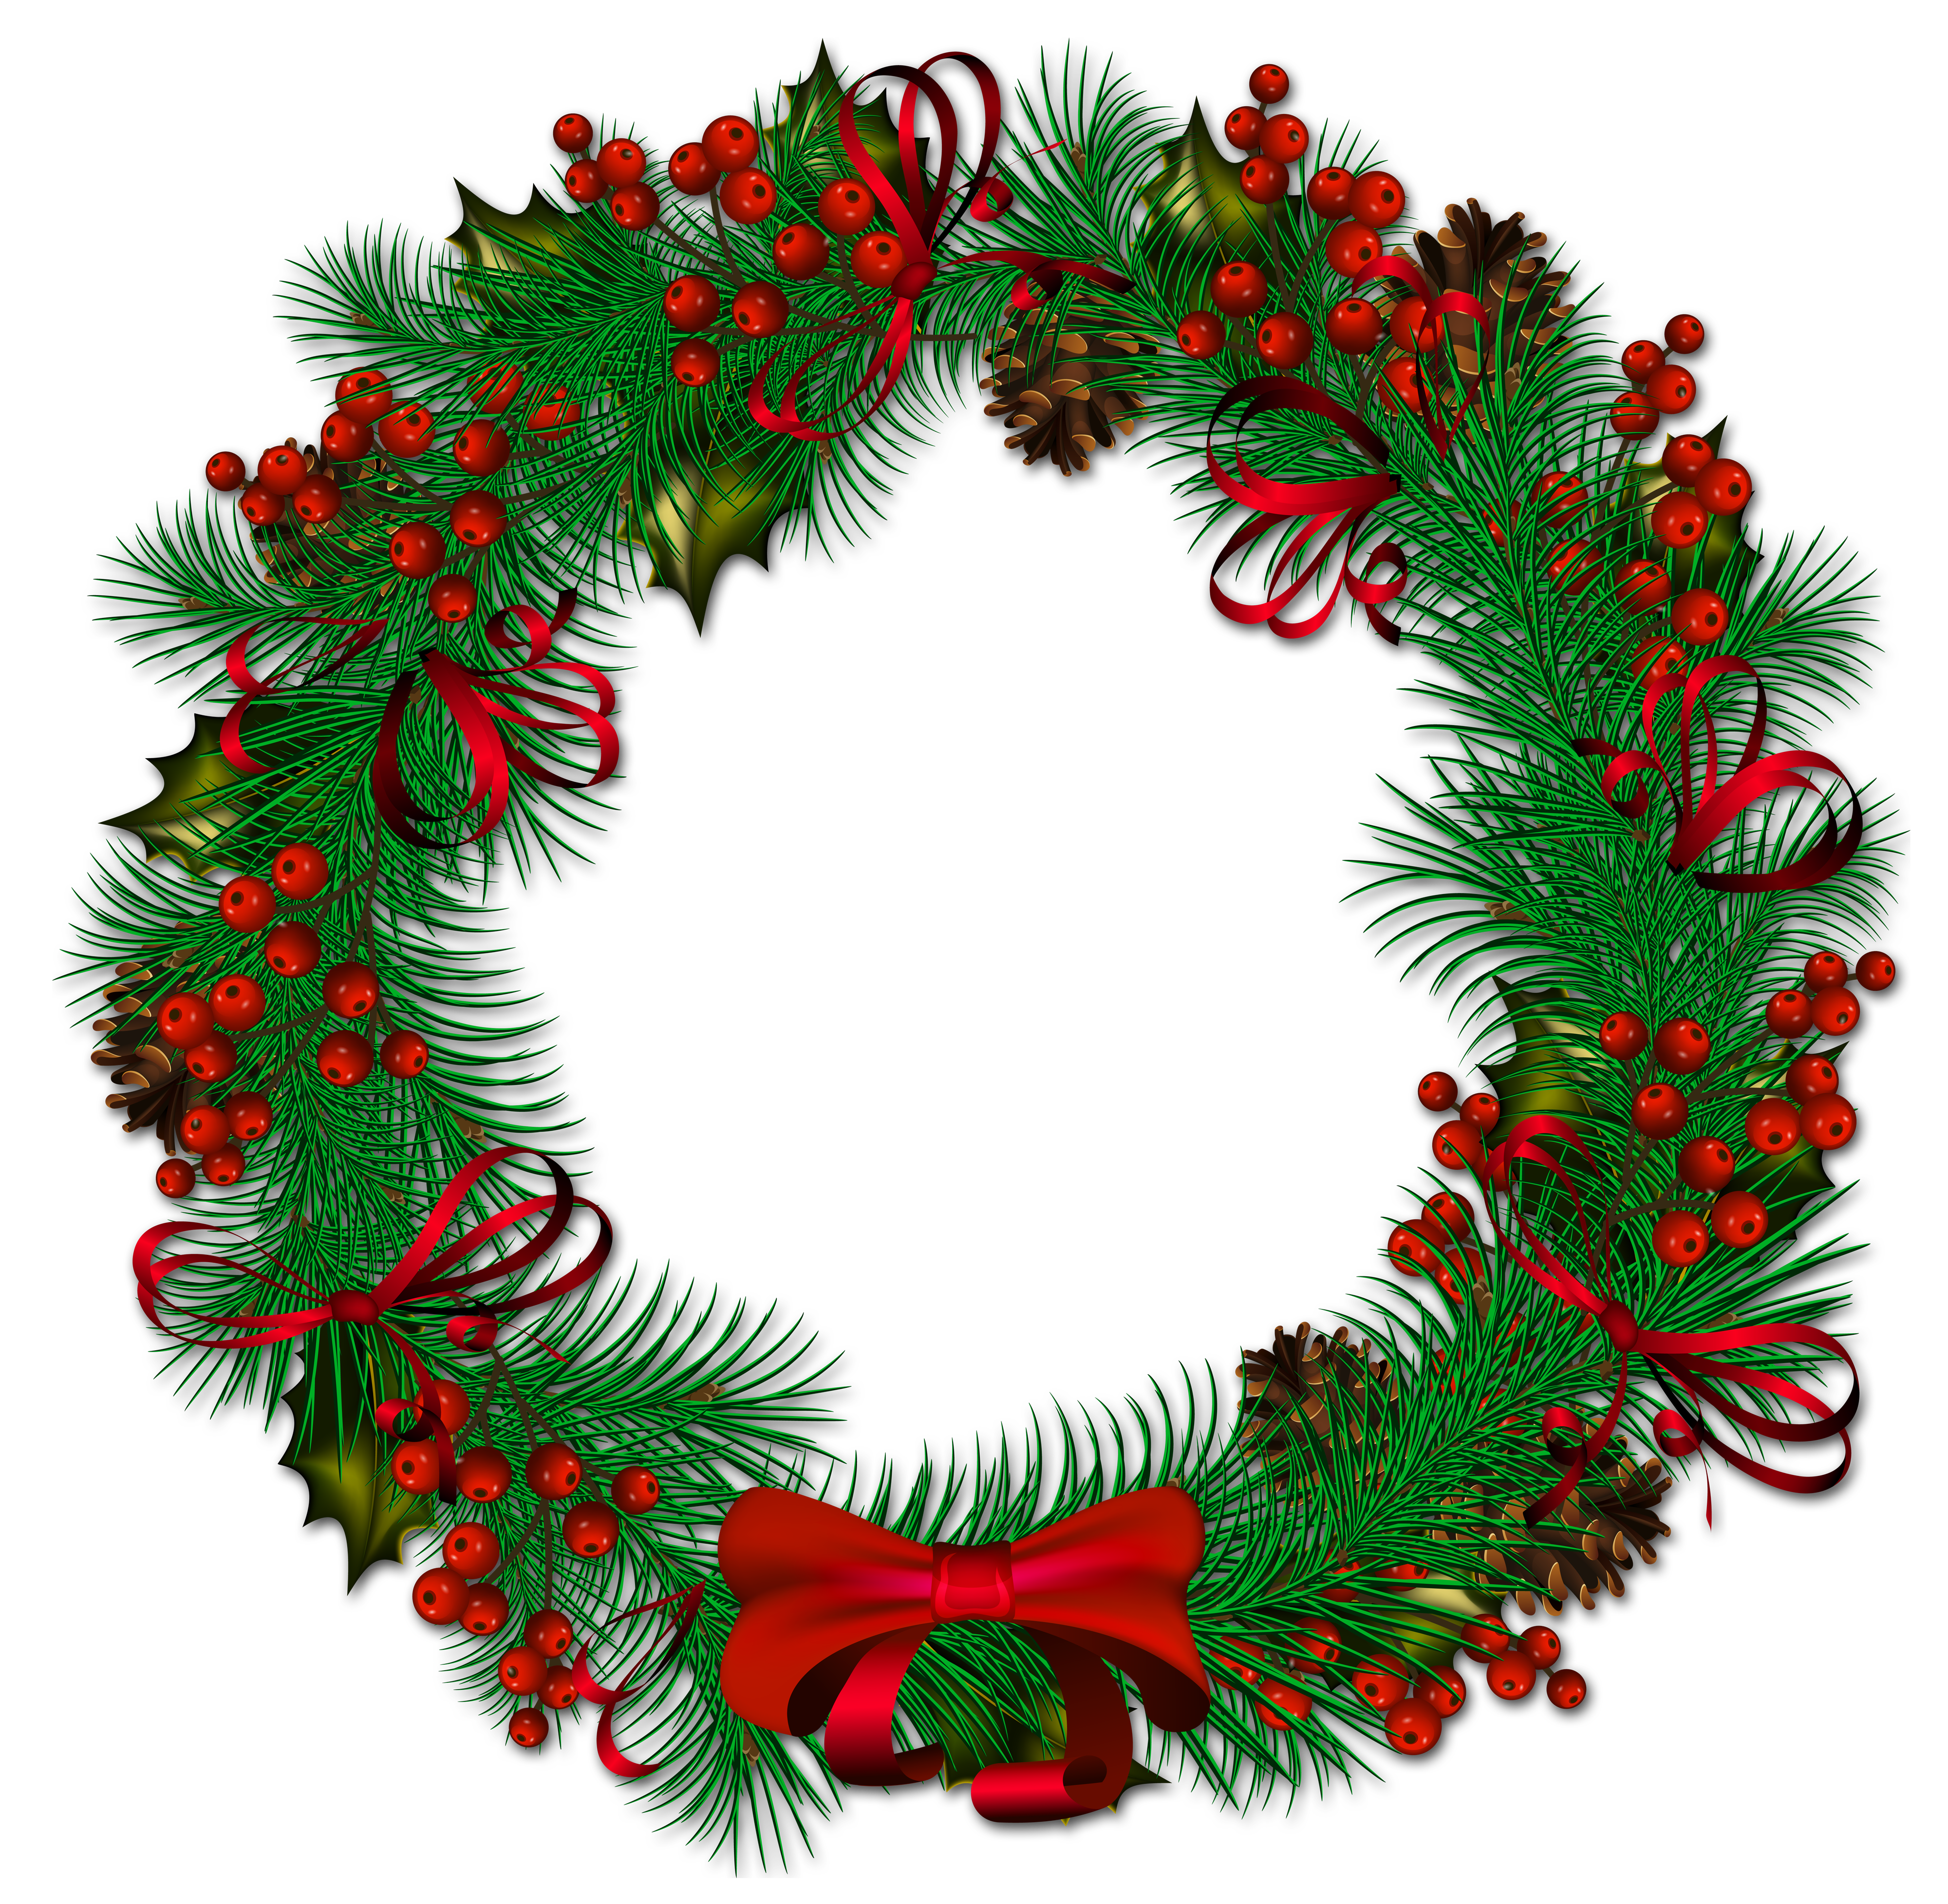 4000x3910 Christmas ~ Christmas Wreath Clipart Cliparts Vector Stock Border